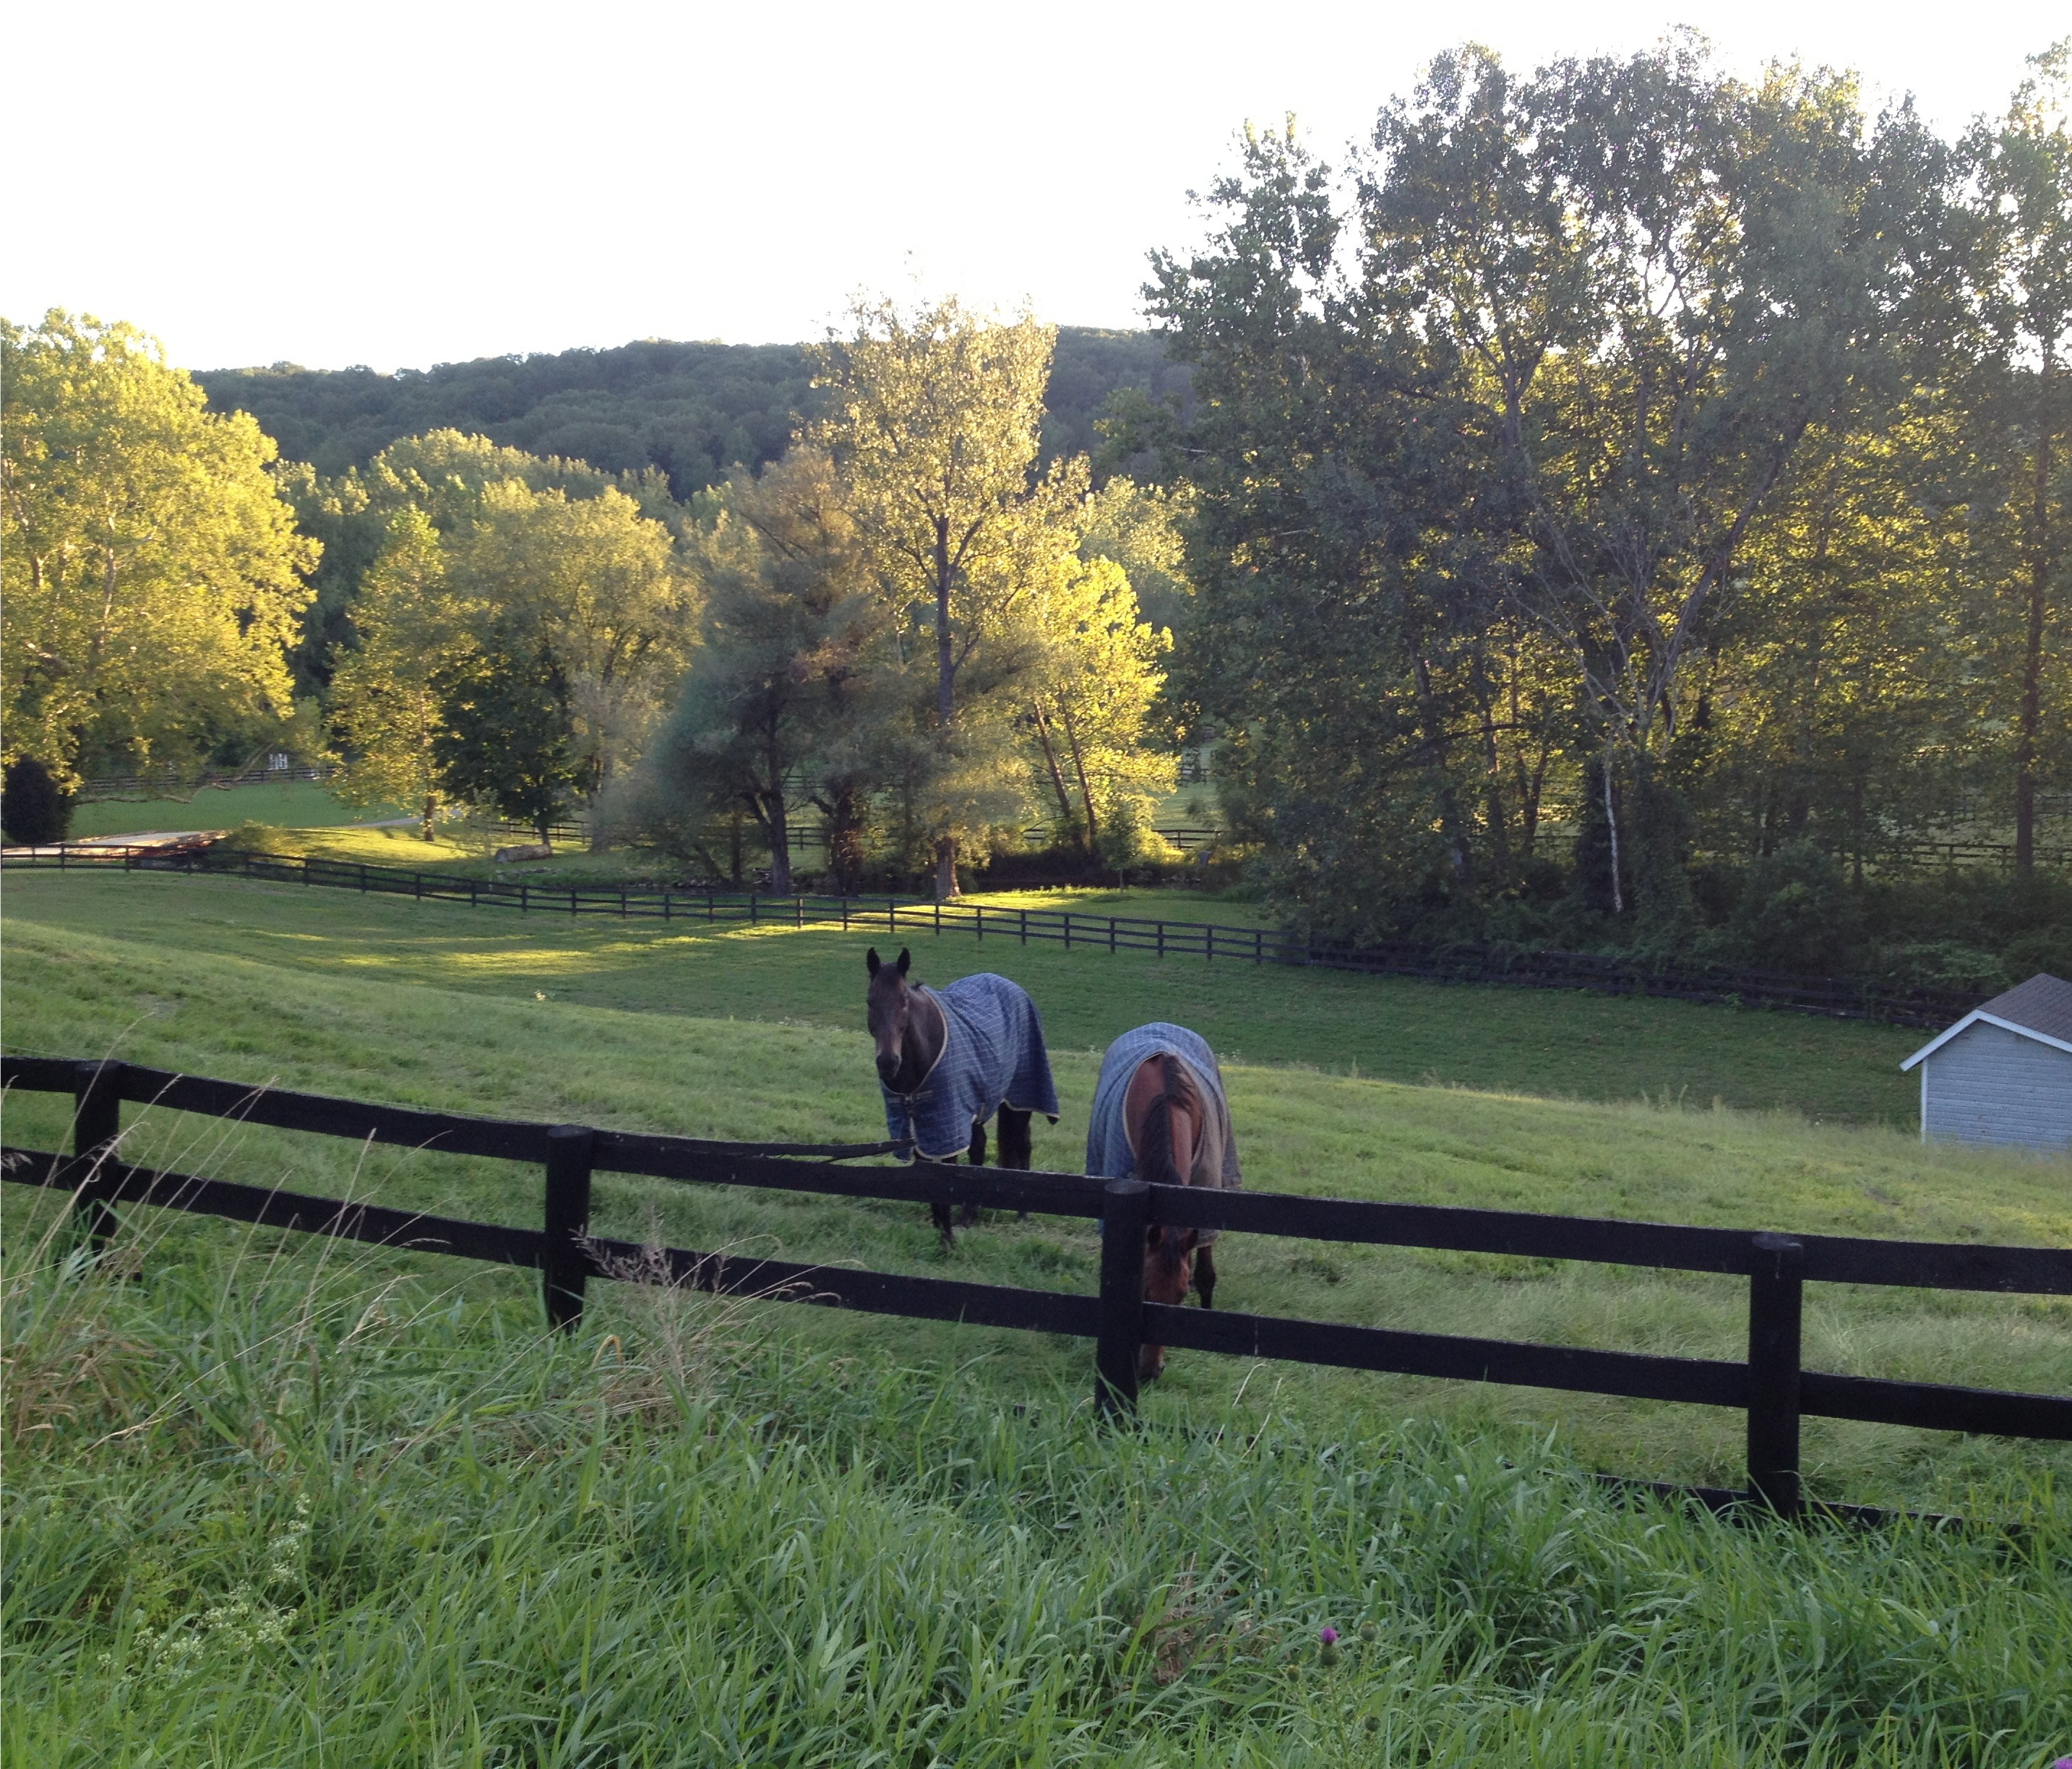 Horses in upstate New York.